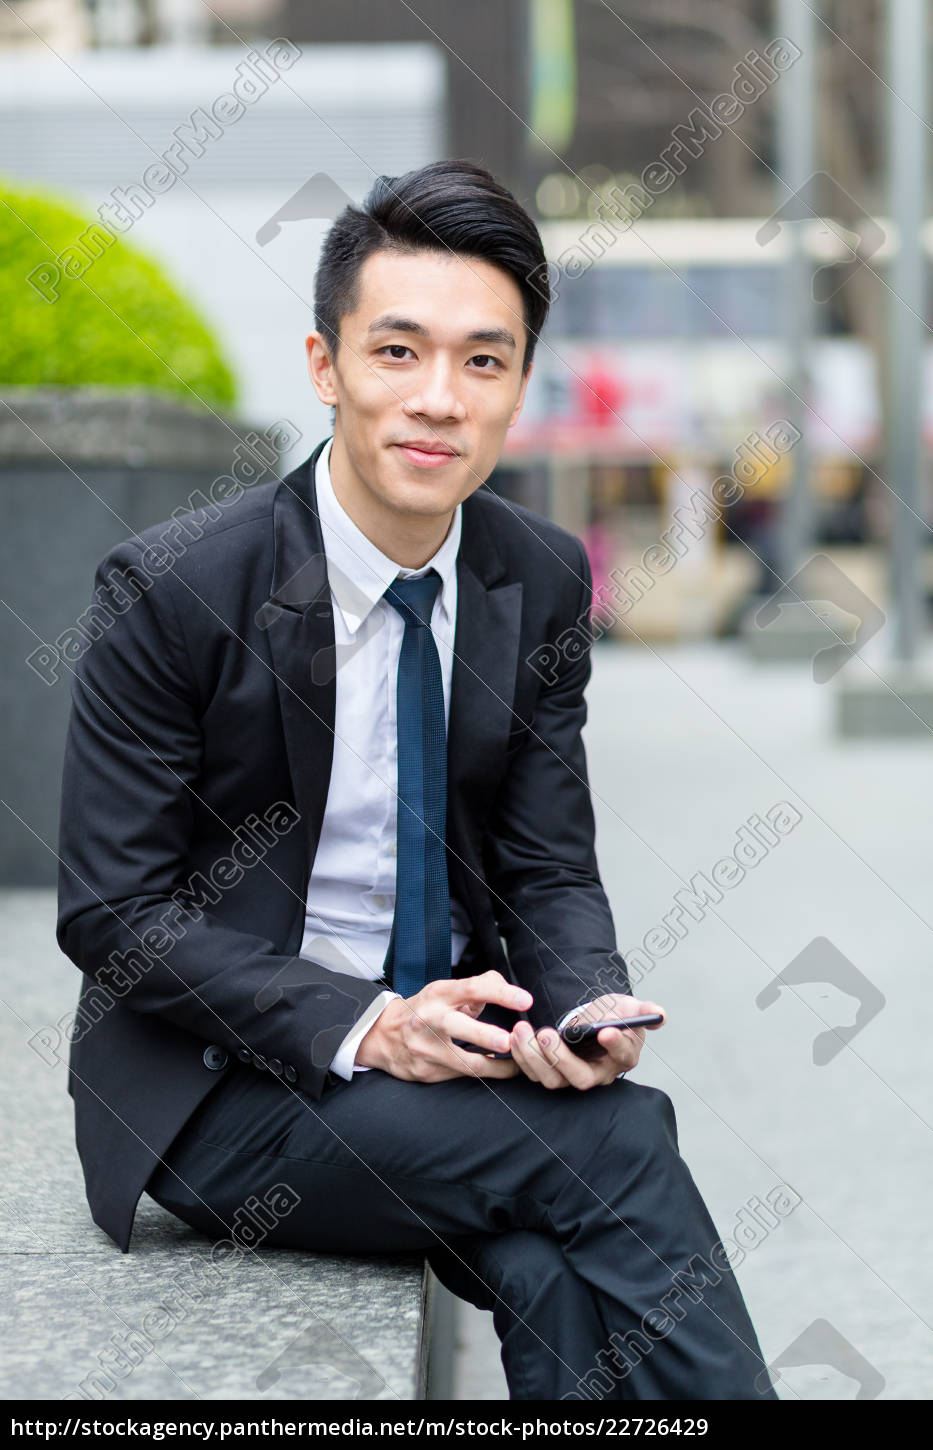 businessman, use, of, cellphone - 22726429